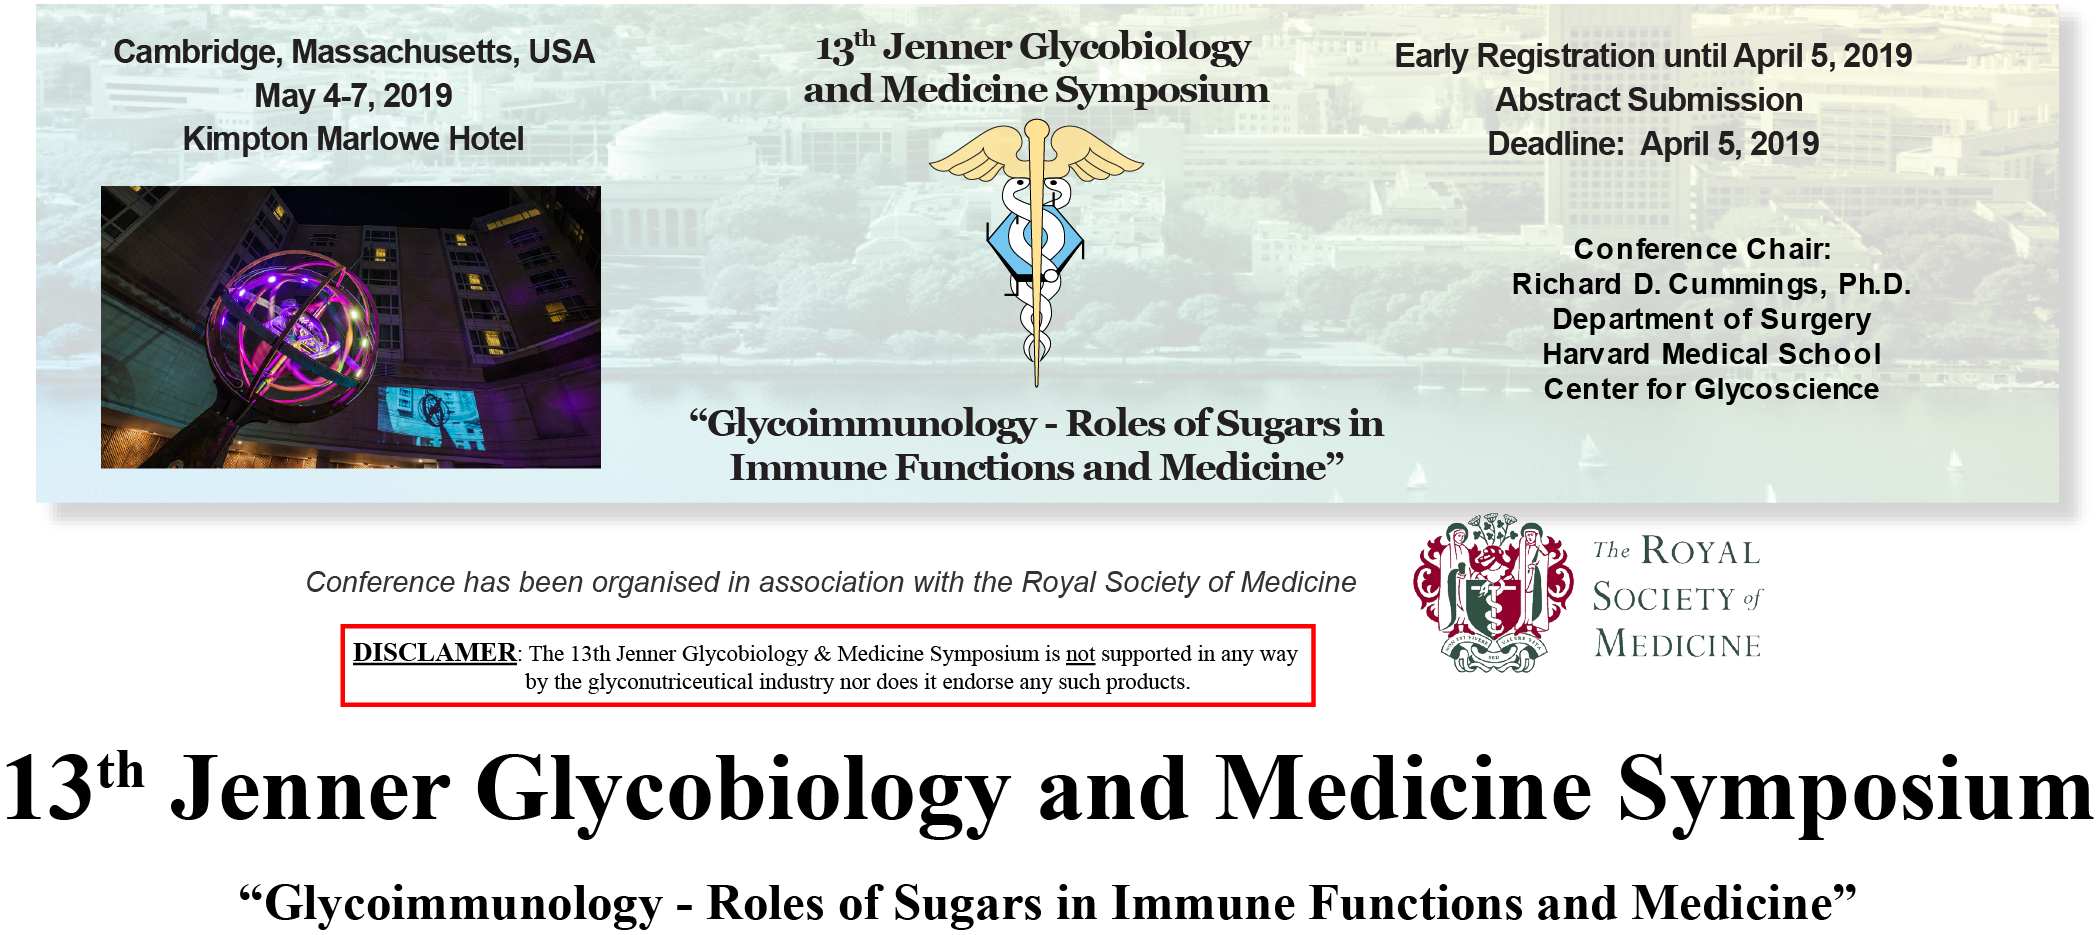 13th Jenner Glycobiology and Medicine Symposium